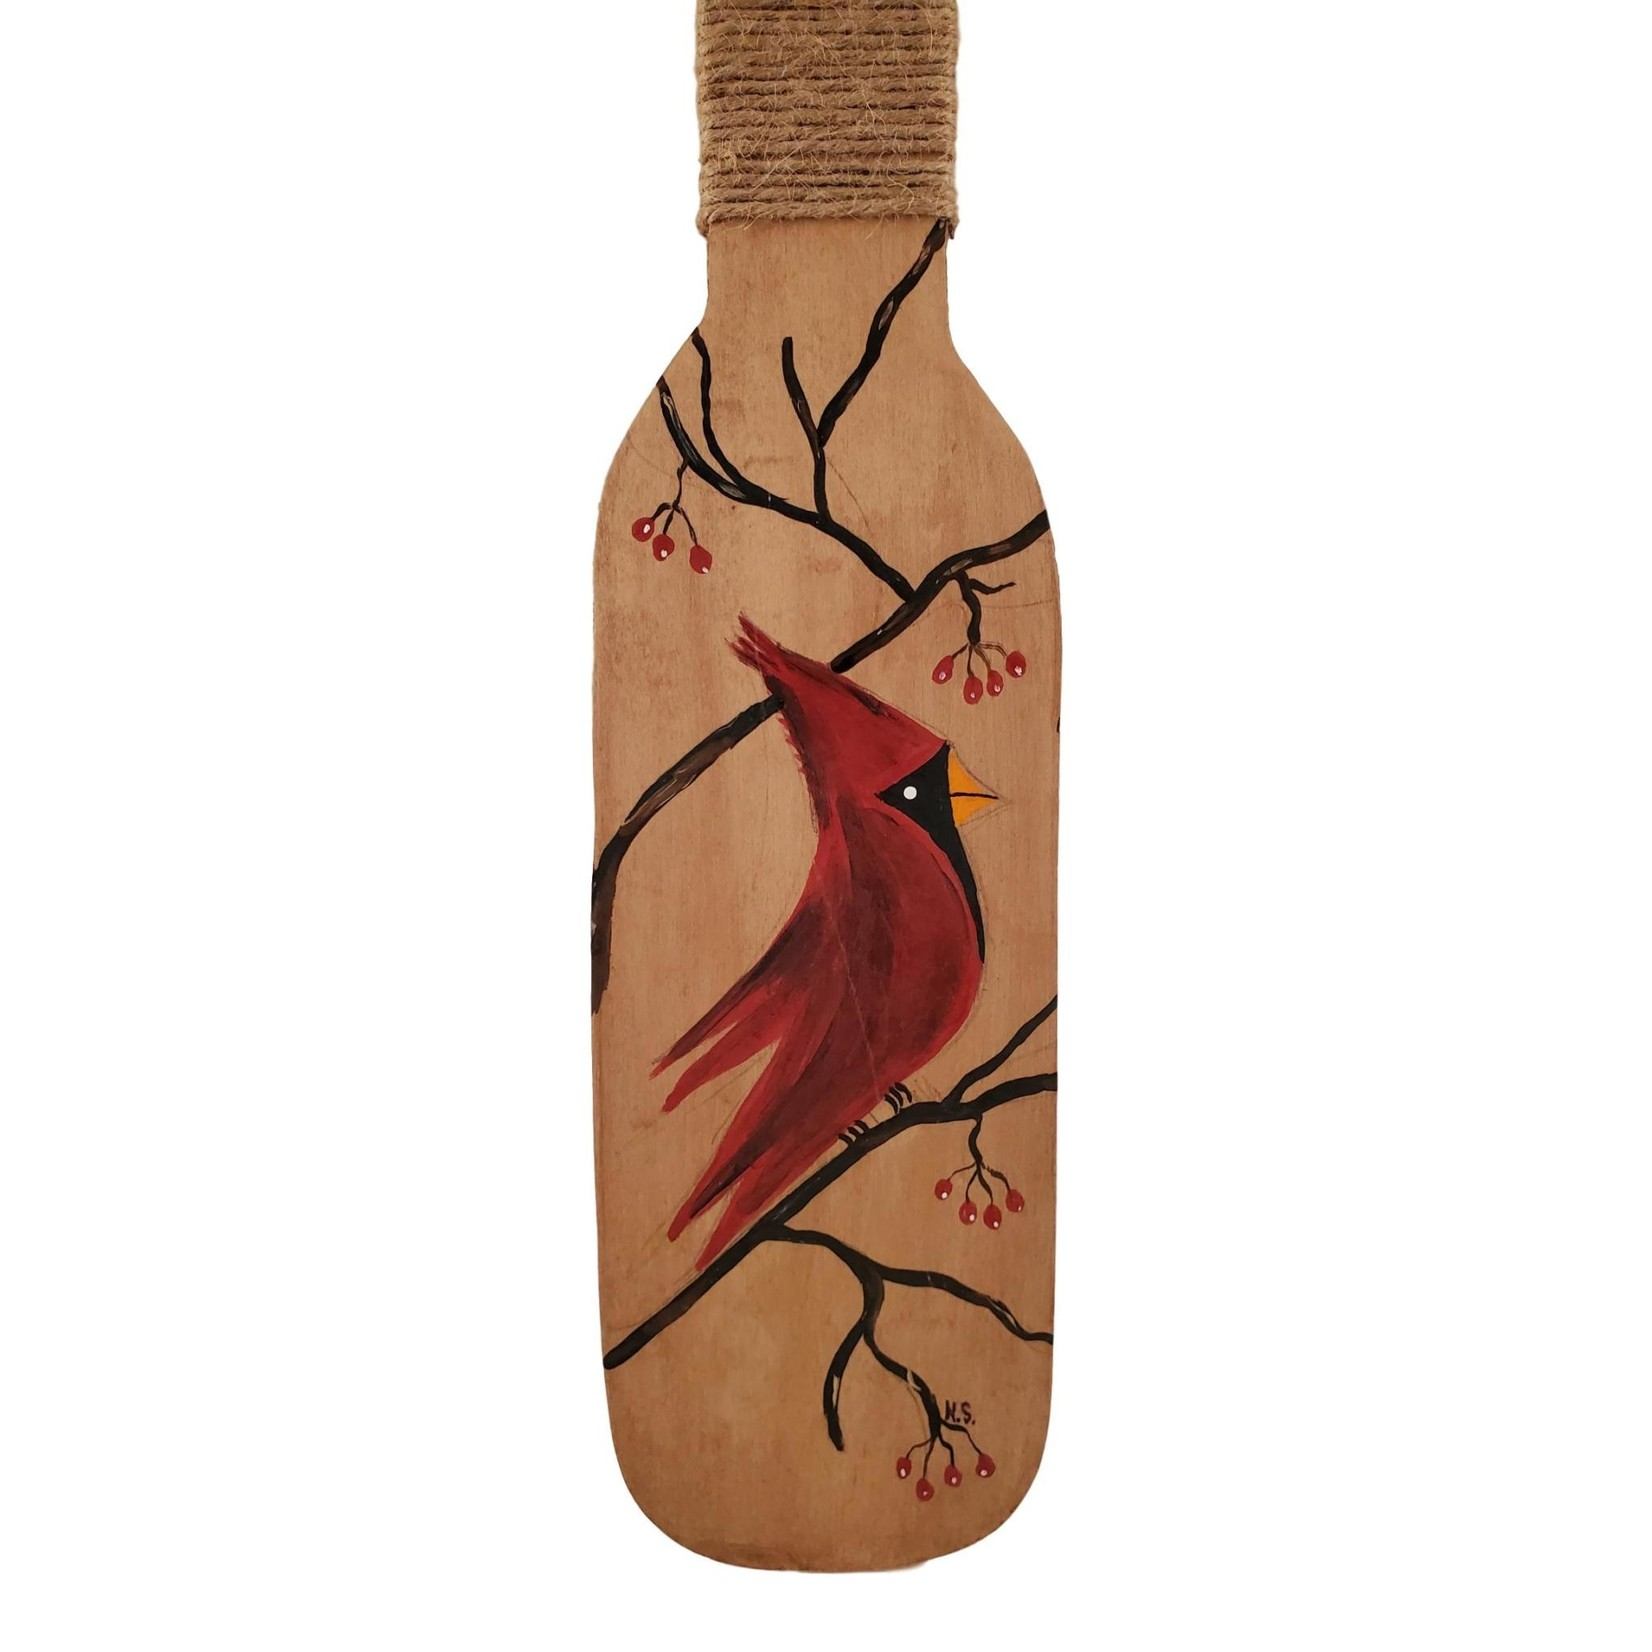 Off The Wall Gallery Handpainted Wall Hanging Paddle - Red Cardinal